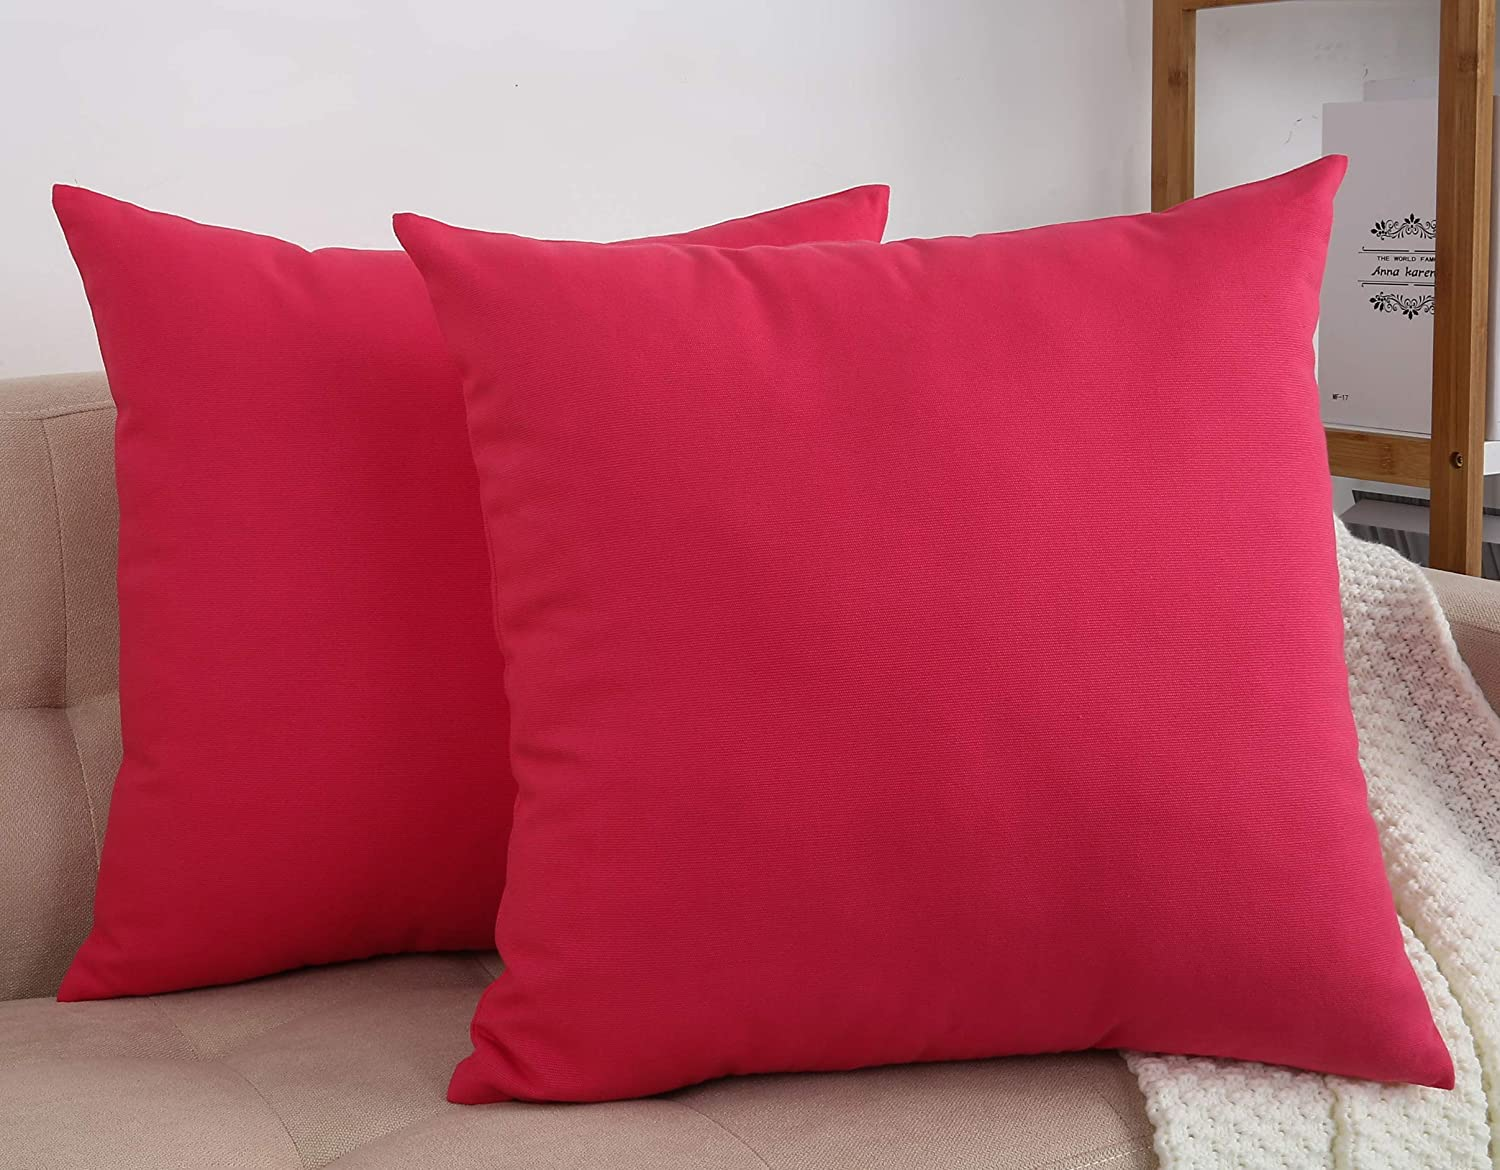 TangDepot New product! New type 67% OFF of fixed price Cotton Solid Throw Pillow Covers x Watermel 16